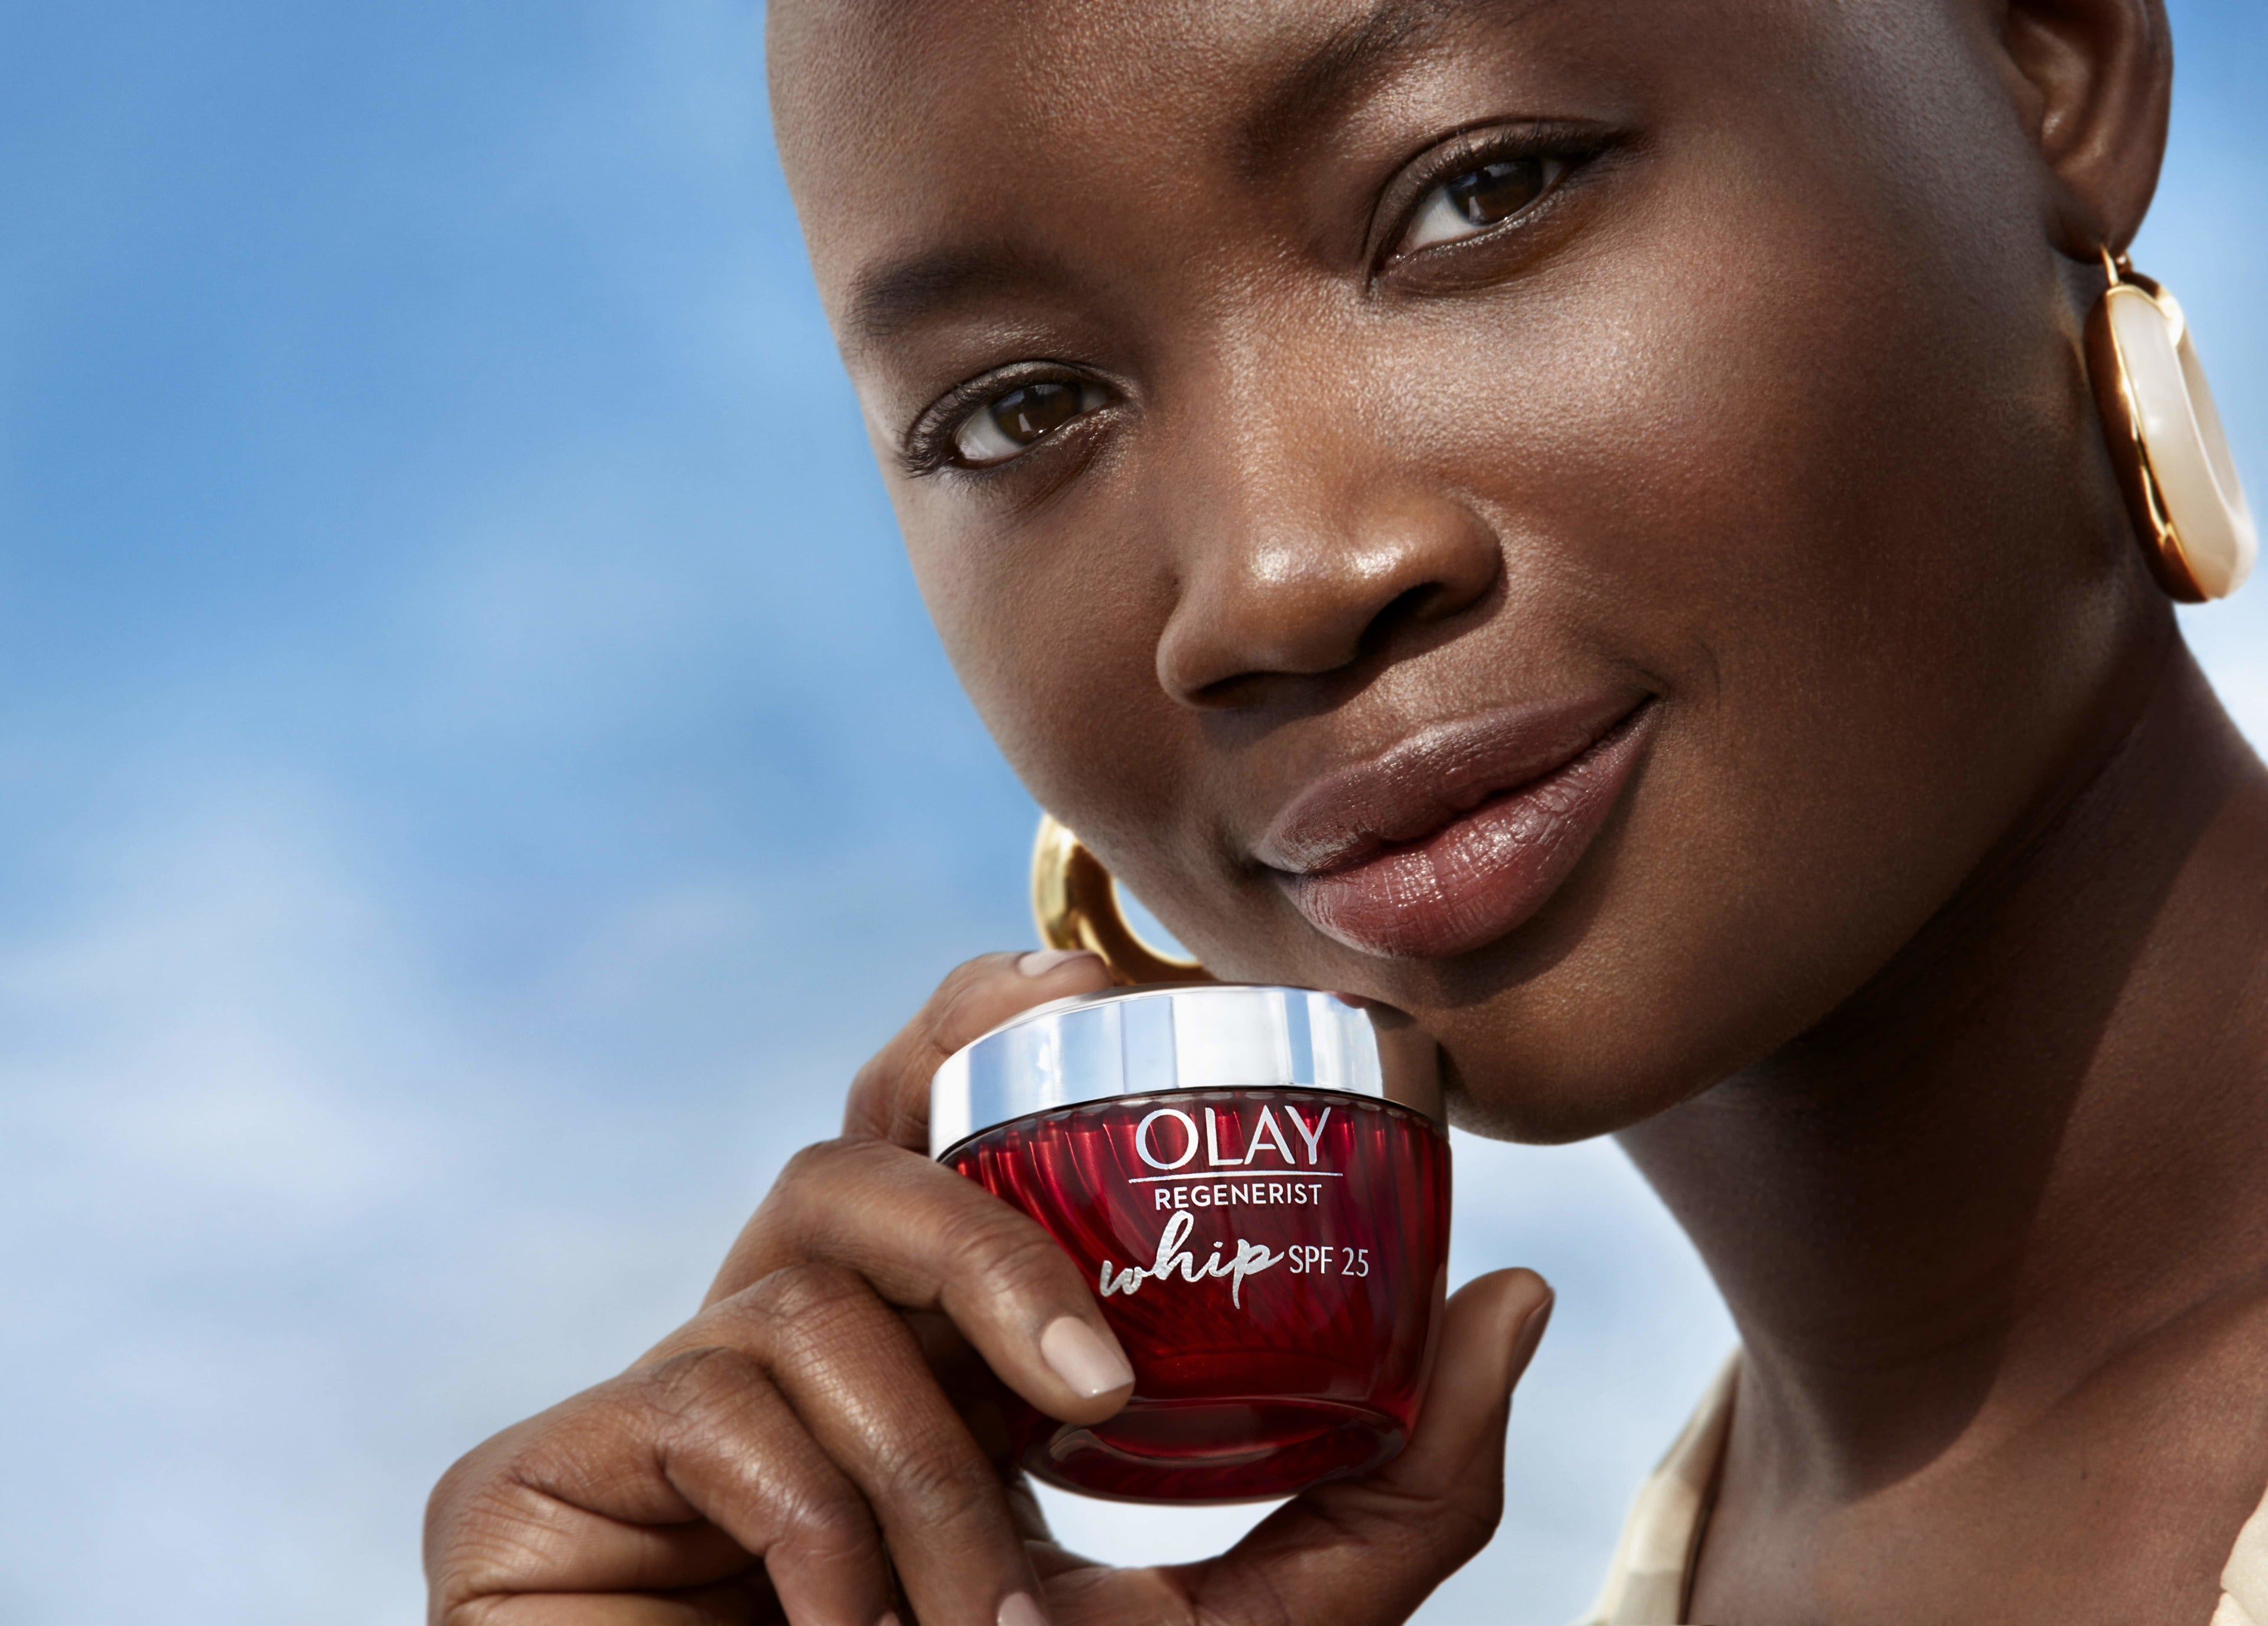 Mama Cax Teams Up With Olay To Open The Dialogue On SPF And Protecting Black Skin